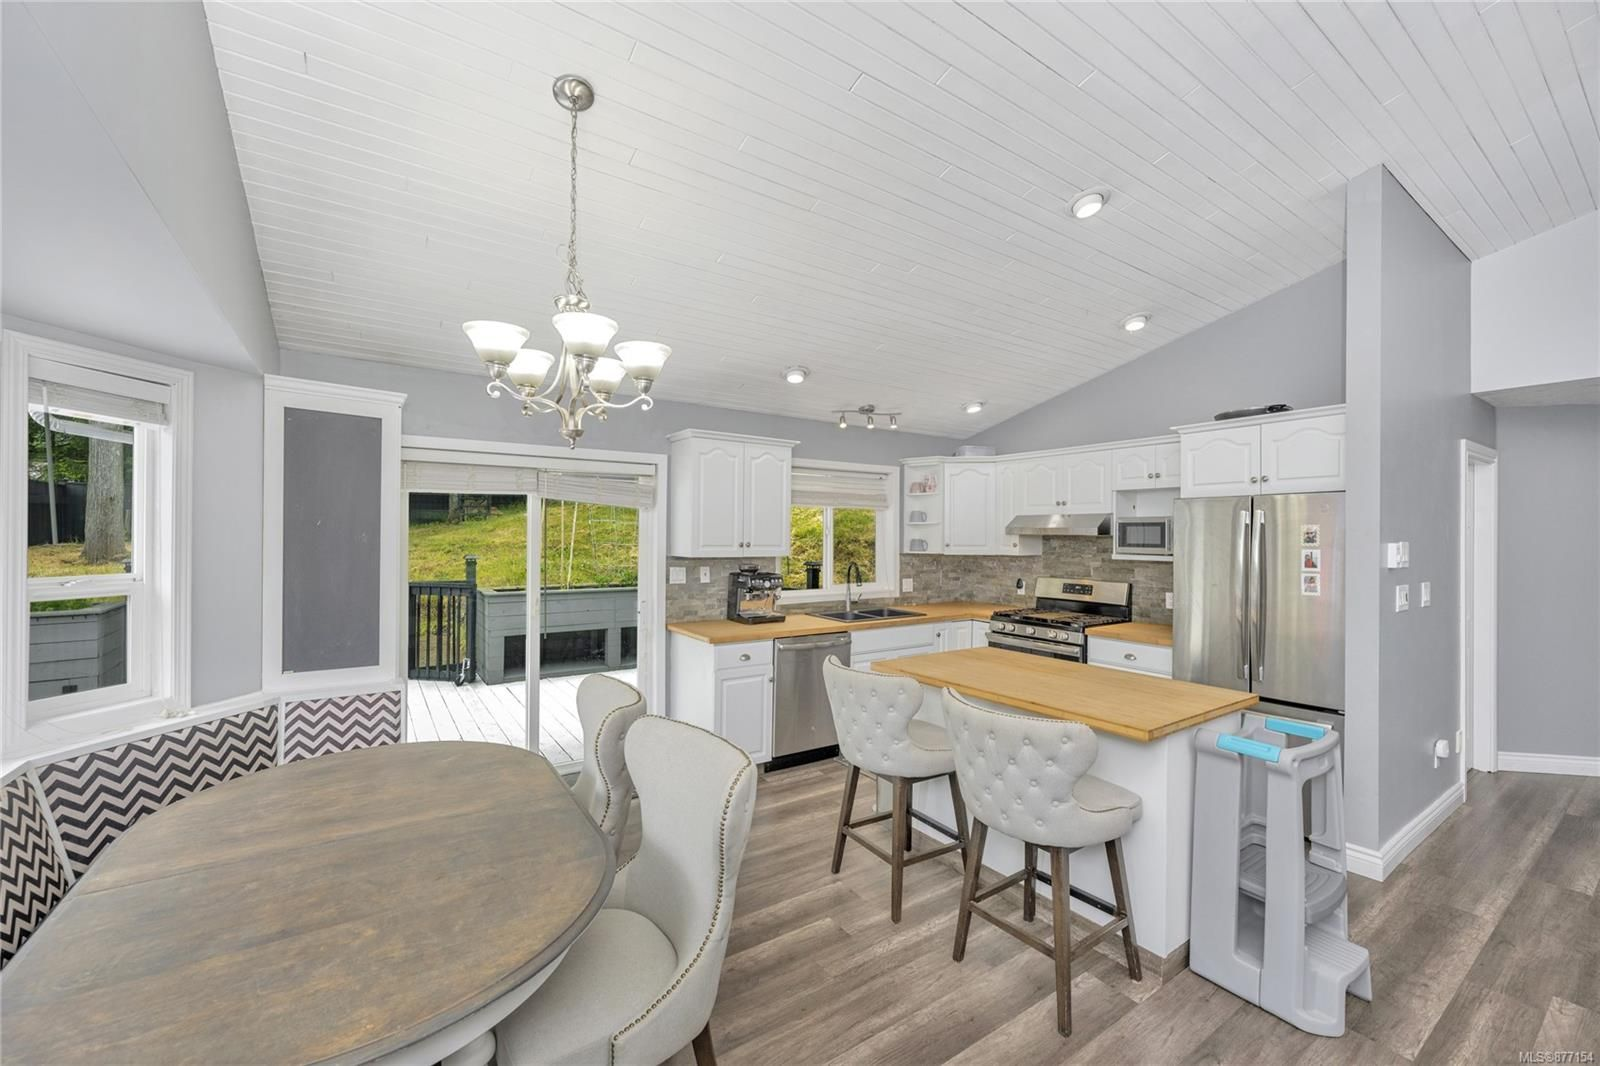 Photo 4: Photos: 2376 Terrace Rd in : ML Shawnigan House for sale (Malahat & Area)  : MLS®# 877154